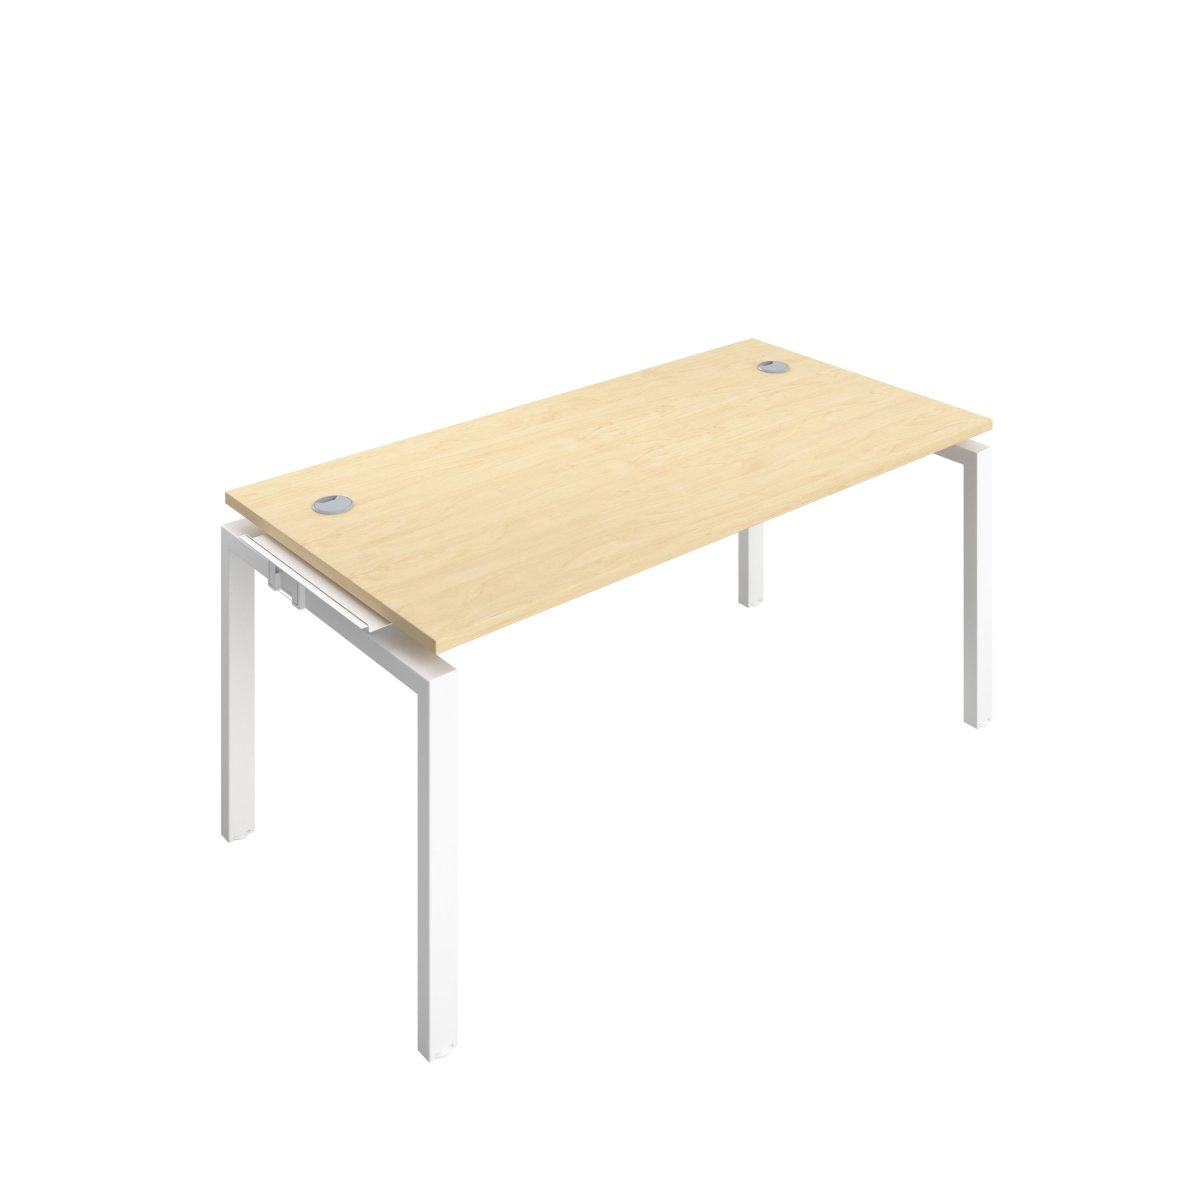 Telescopic 1 Person Bench Extension 1600 X 800 Cable Port Maple-White